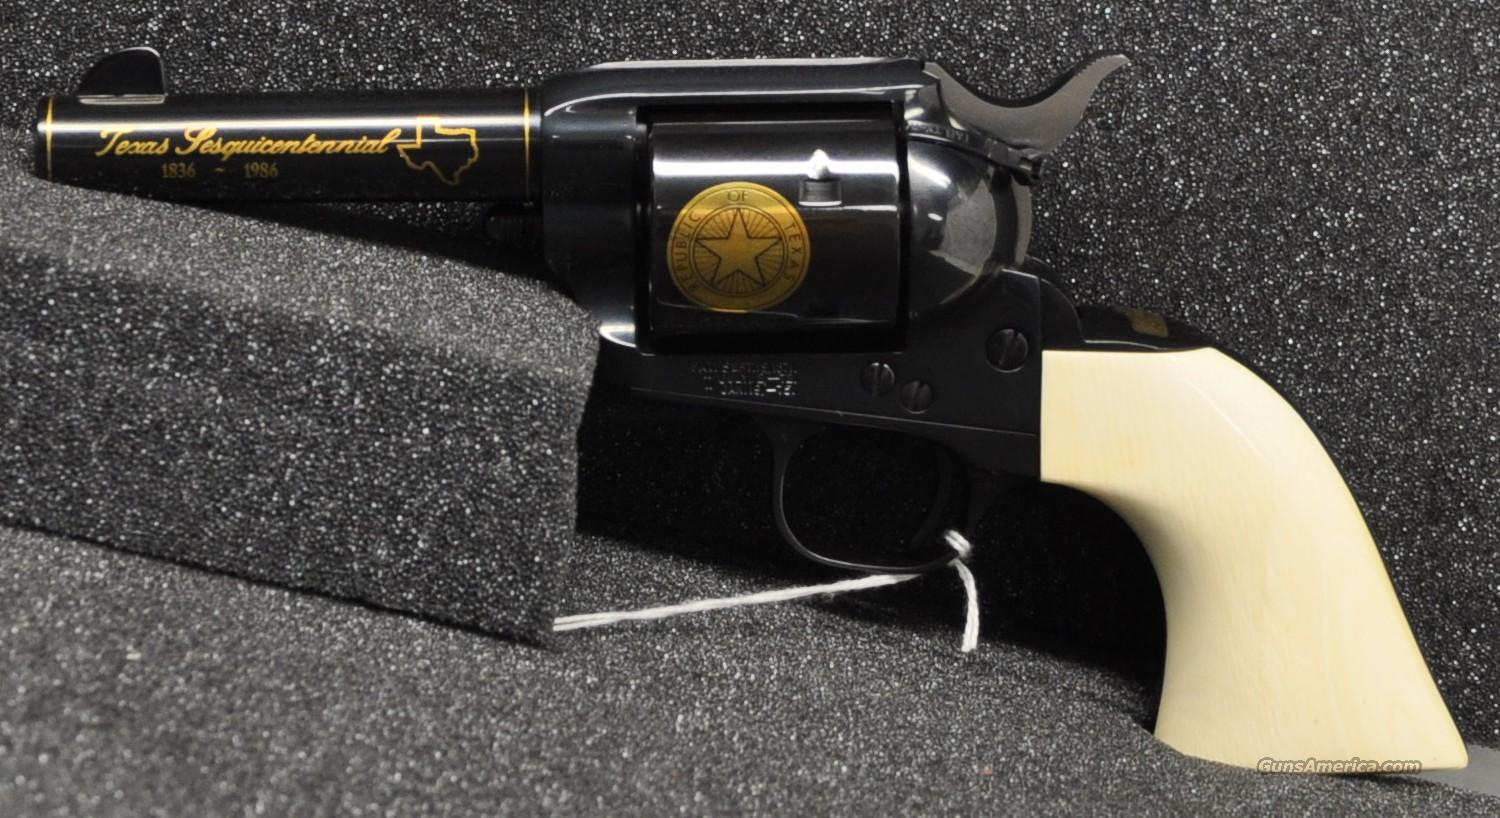 Colt Texas Sesquentinial 45 Colt Factory Ivory  Guns > Pistols > Colt Single Action Revolvers - 3rd Gen.